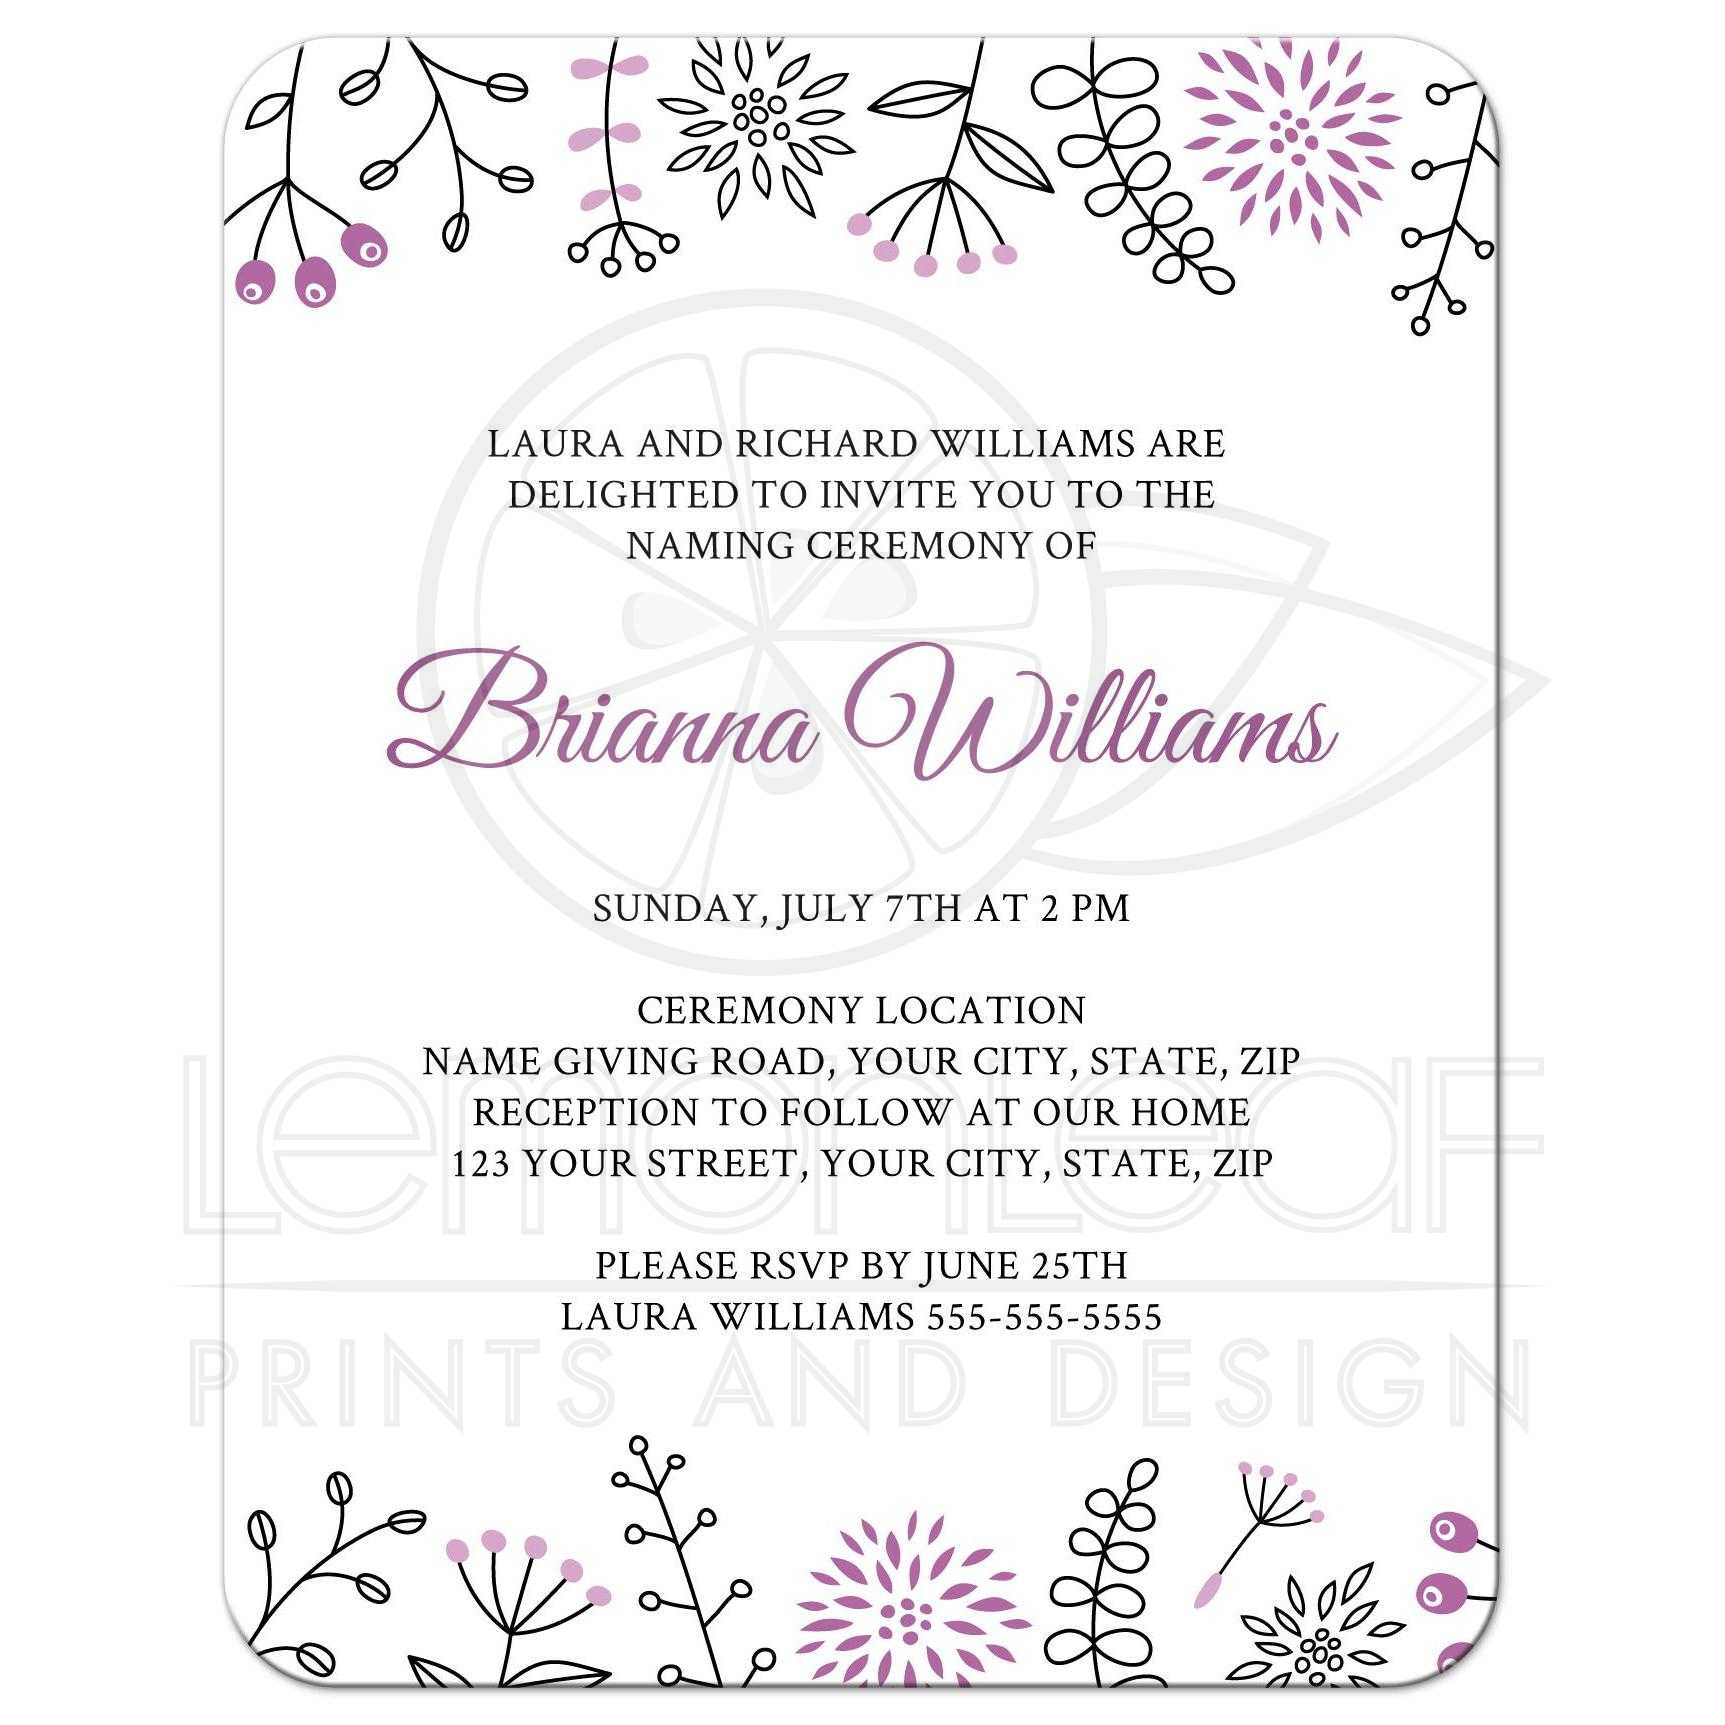 Naming/name giving ceremony invitation with cute and modern floral ...